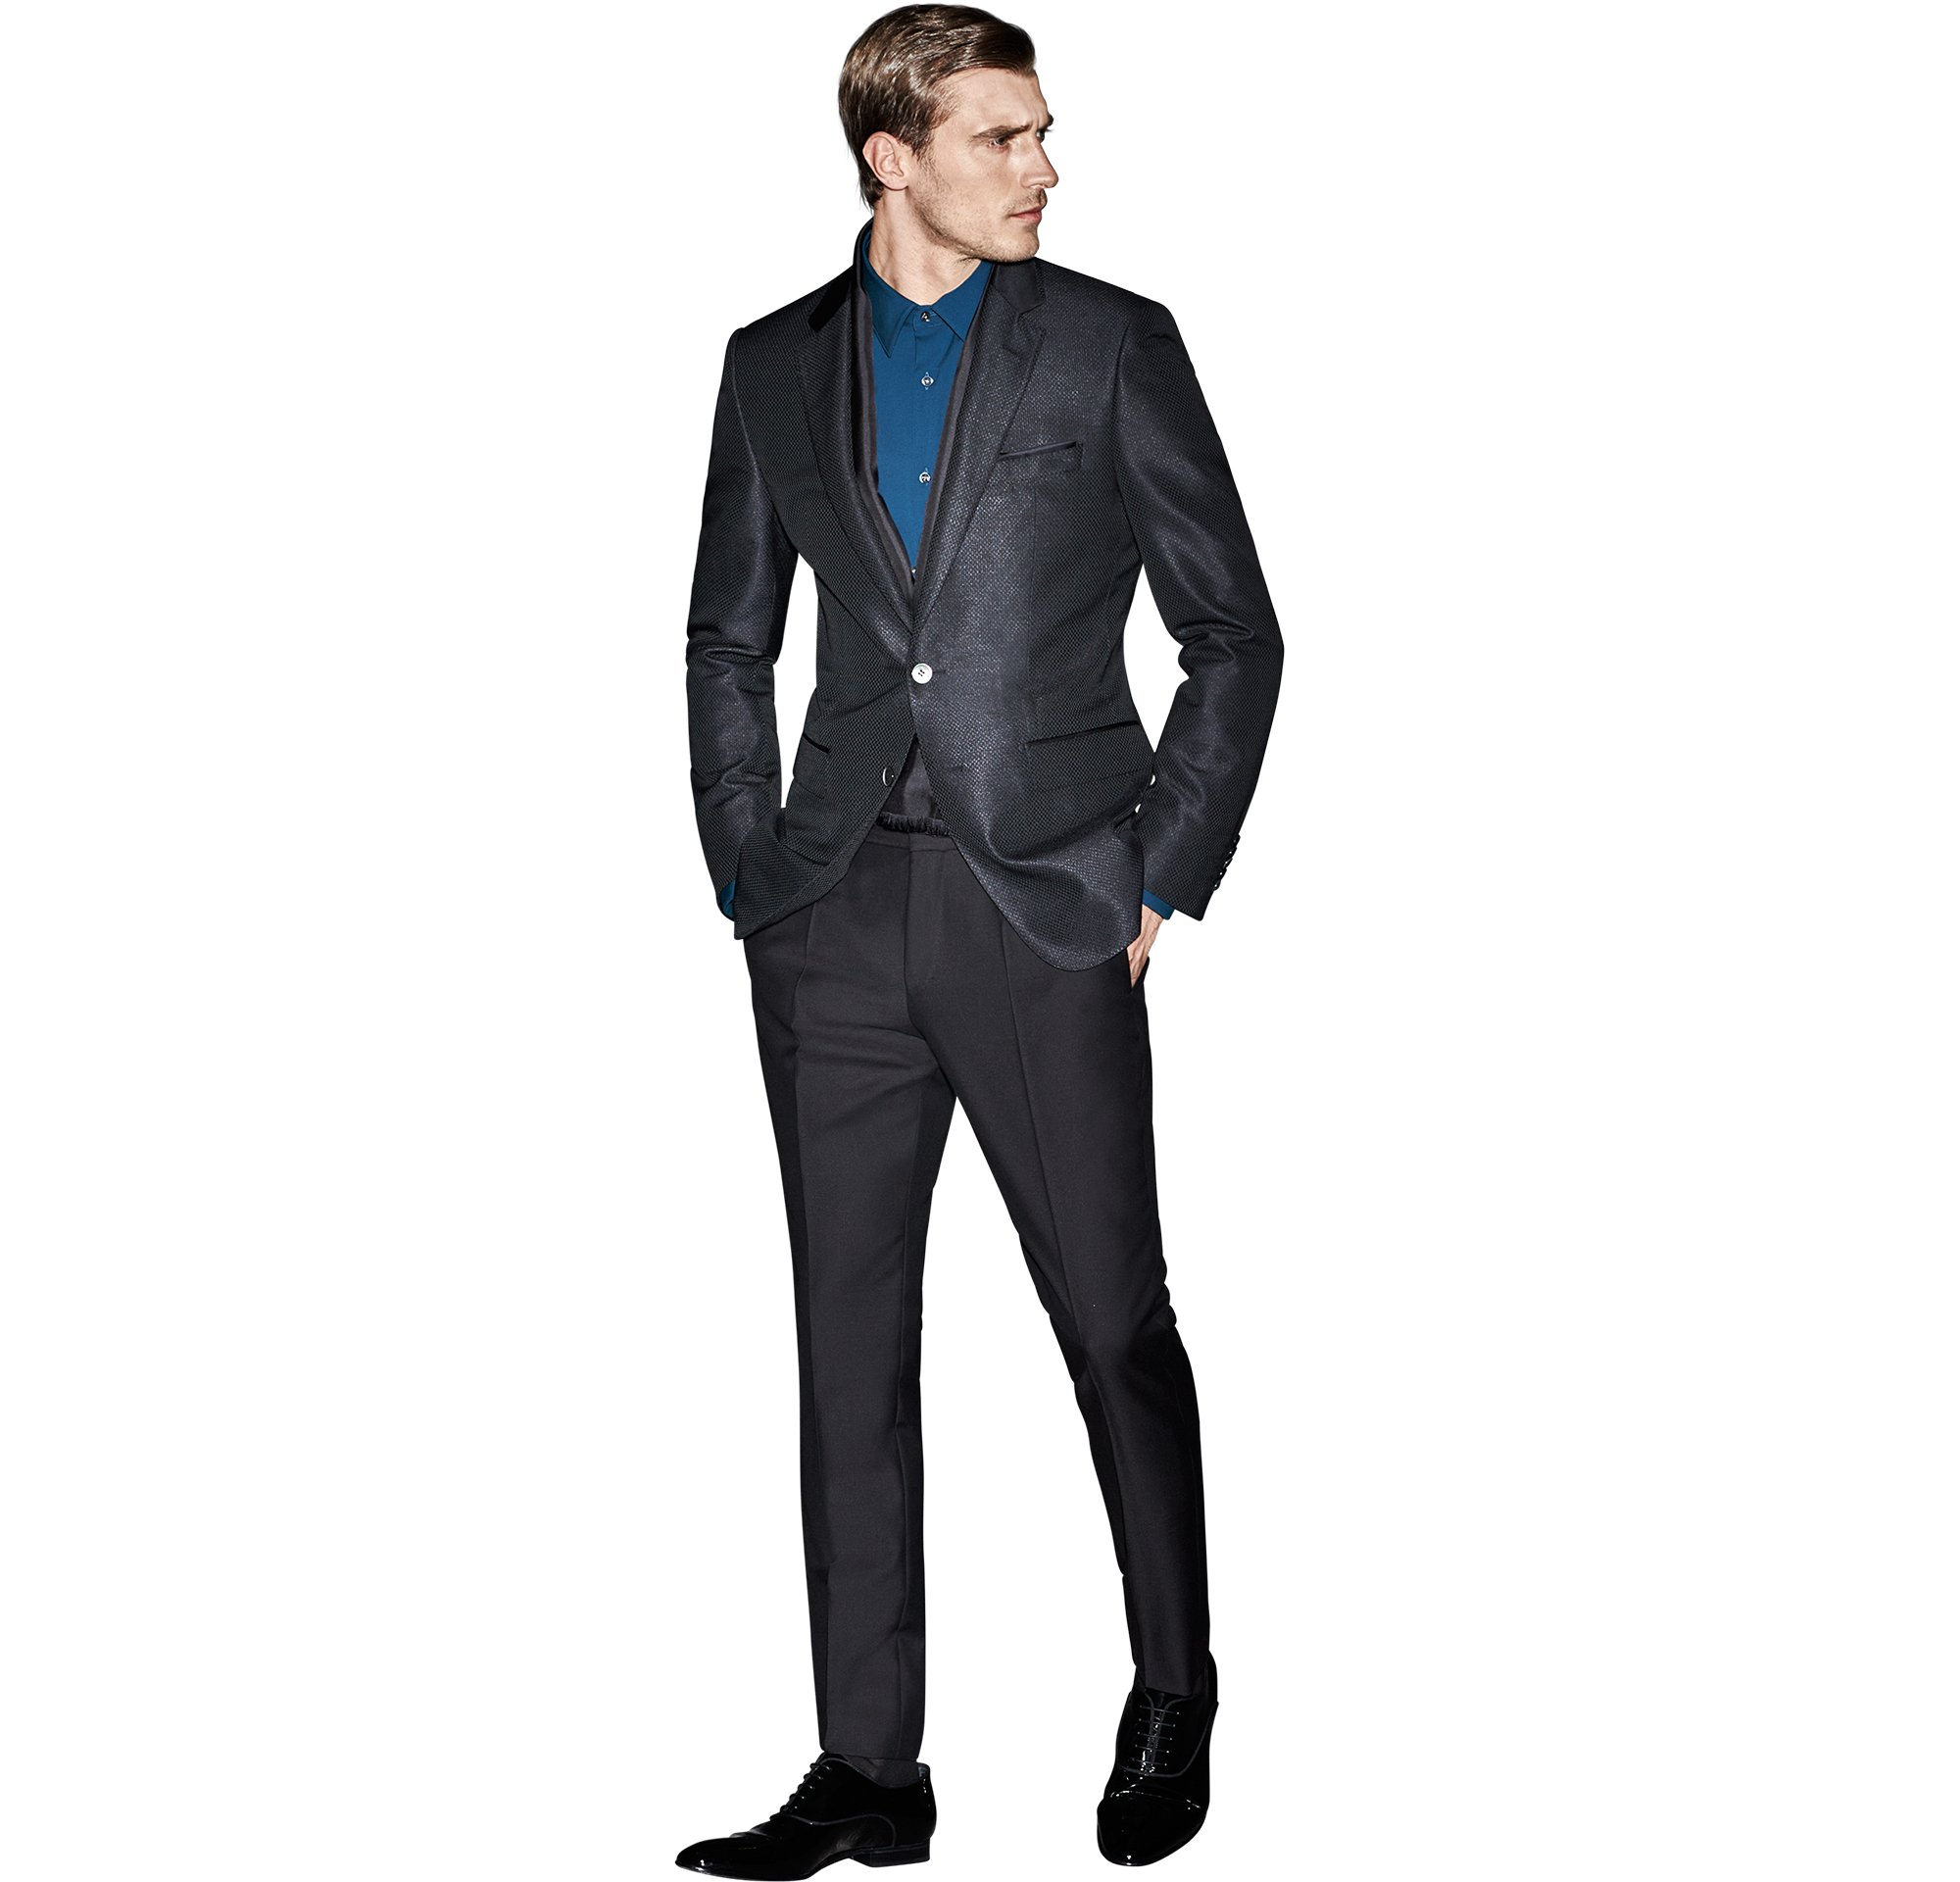 Black jacket over blue shirt and black trousers with black shoes by BOSS